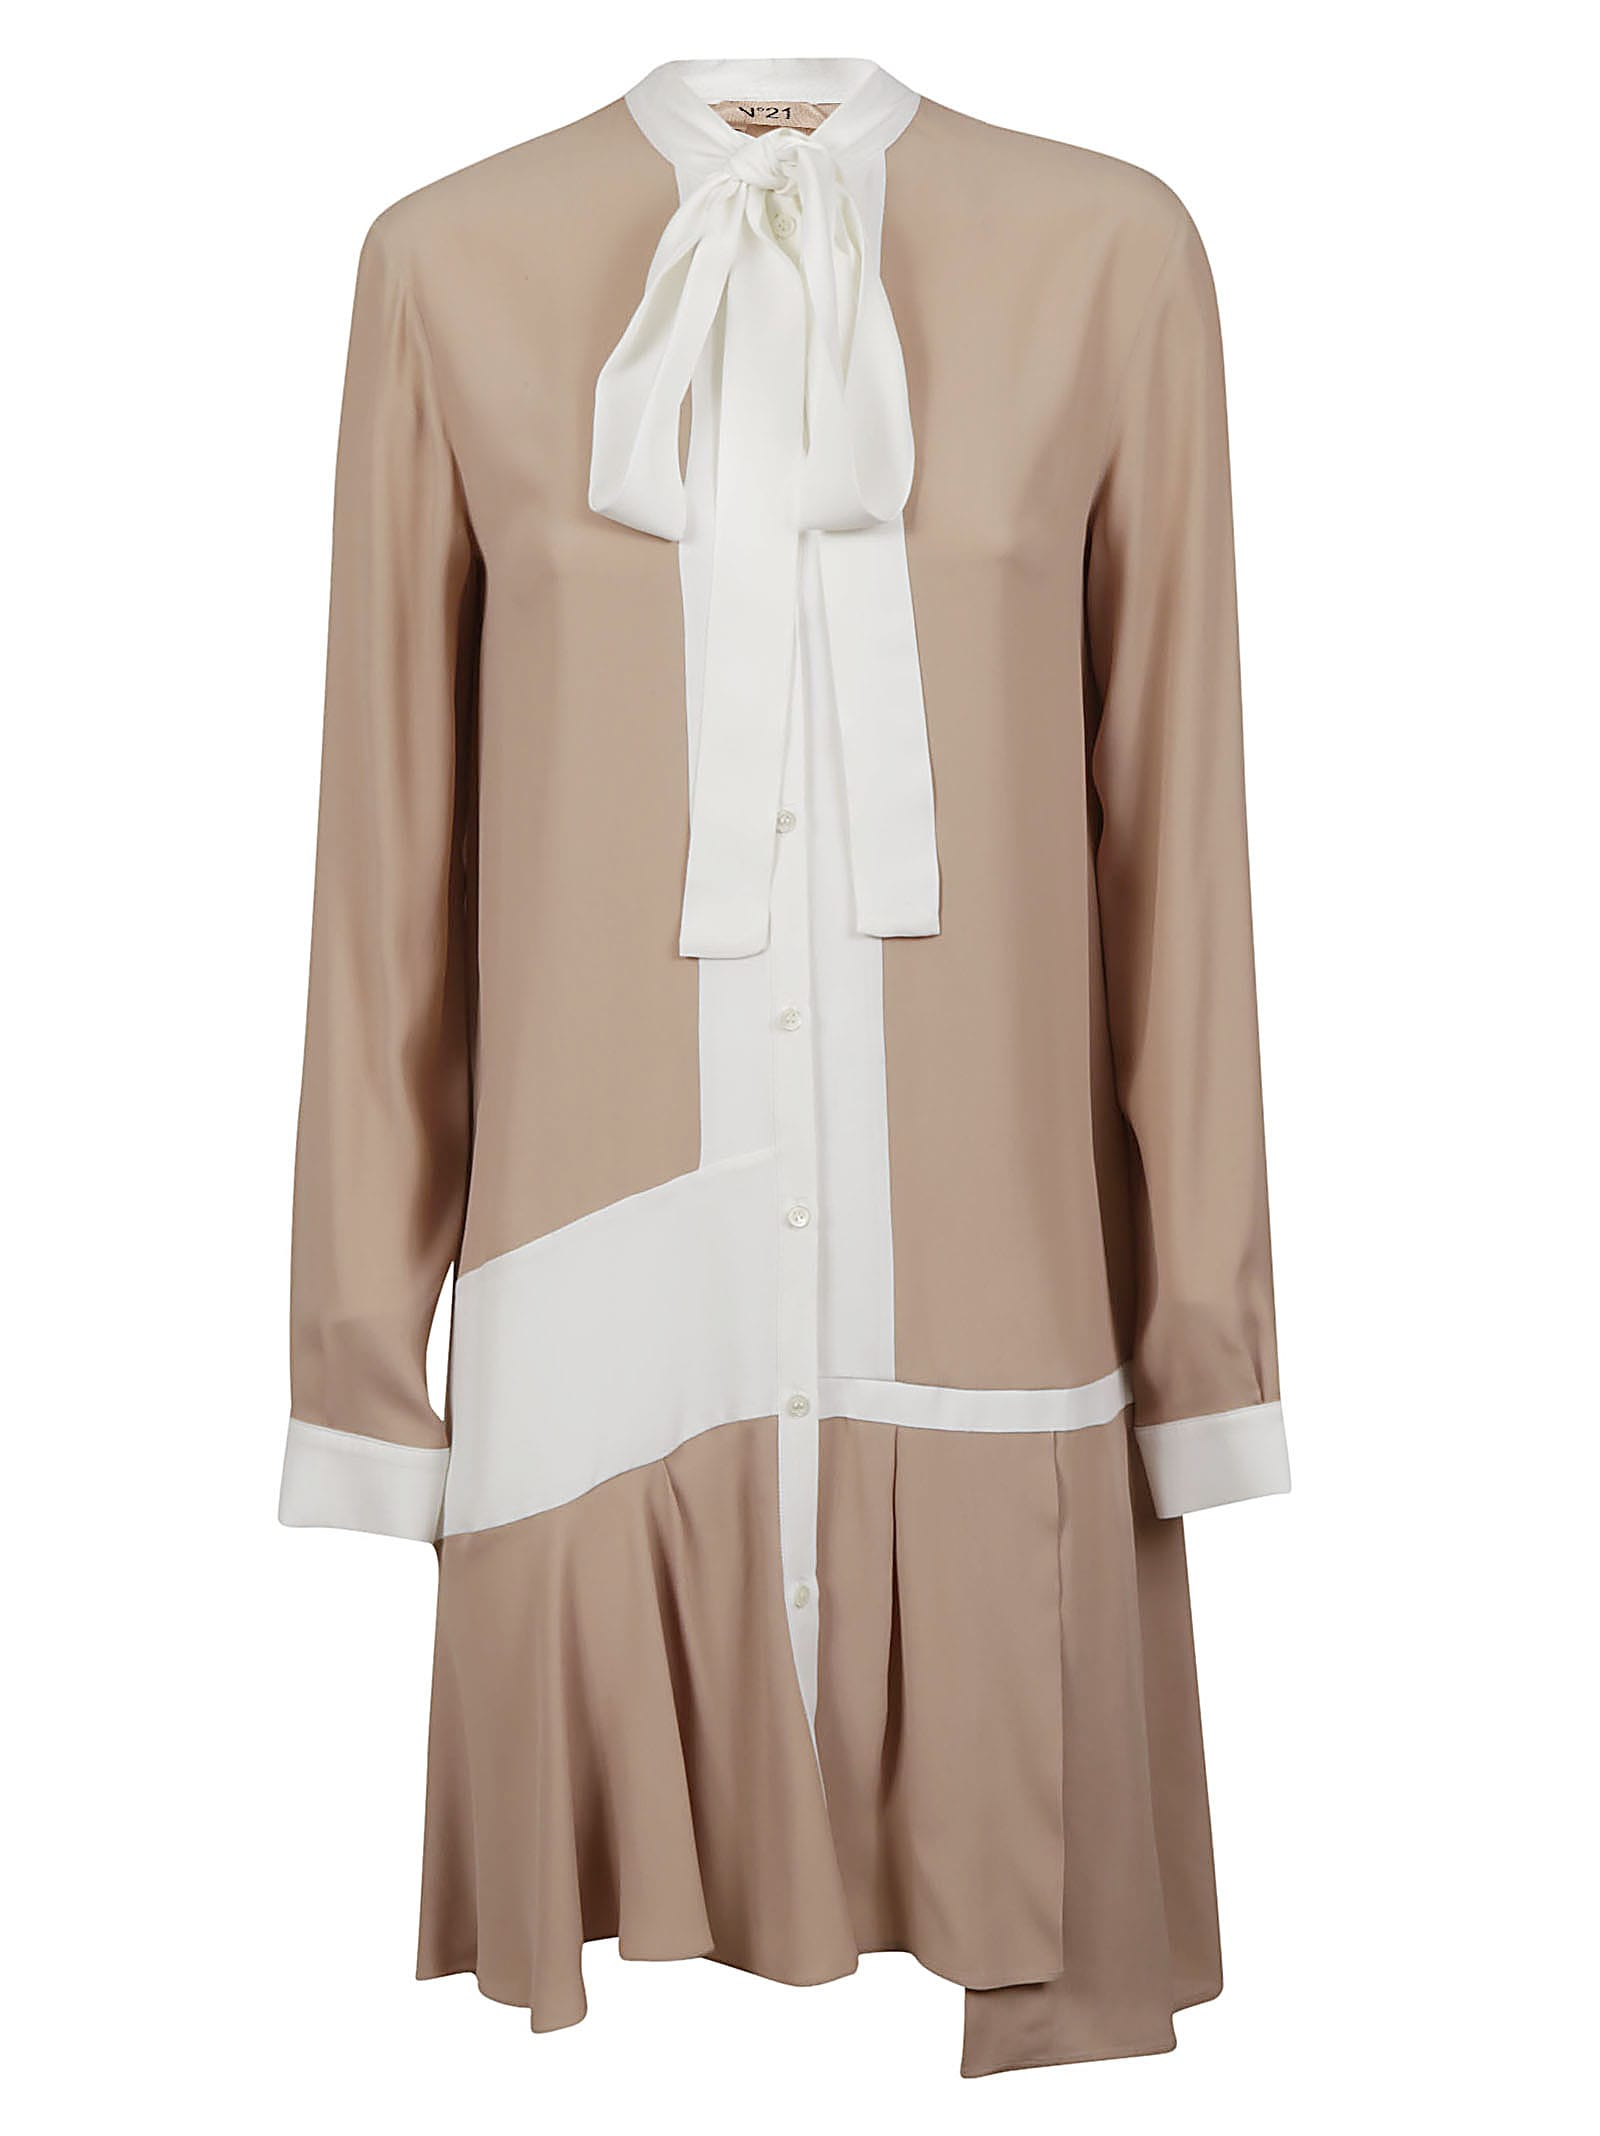 Buy N.21 Tie-neck Shirt Dress online, shop N.21 with free shipping